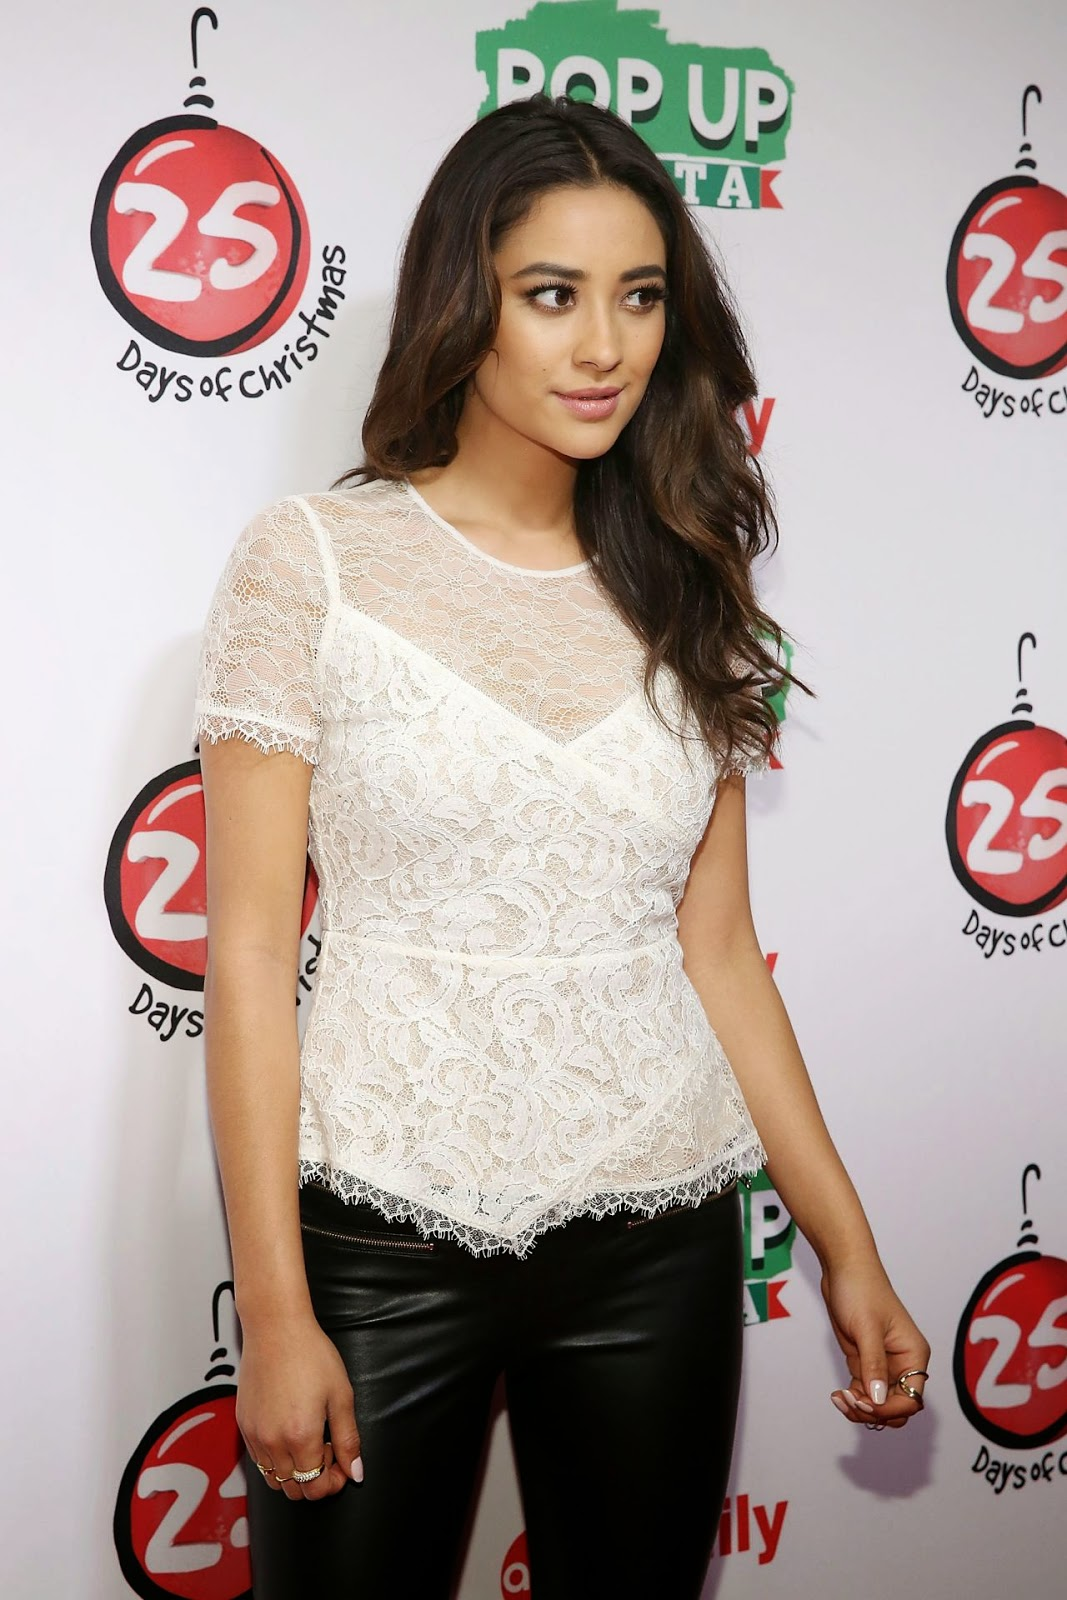 Shay Mitchell – ABC's 25 Days Of Christmas Celebration in NYC – December 2014